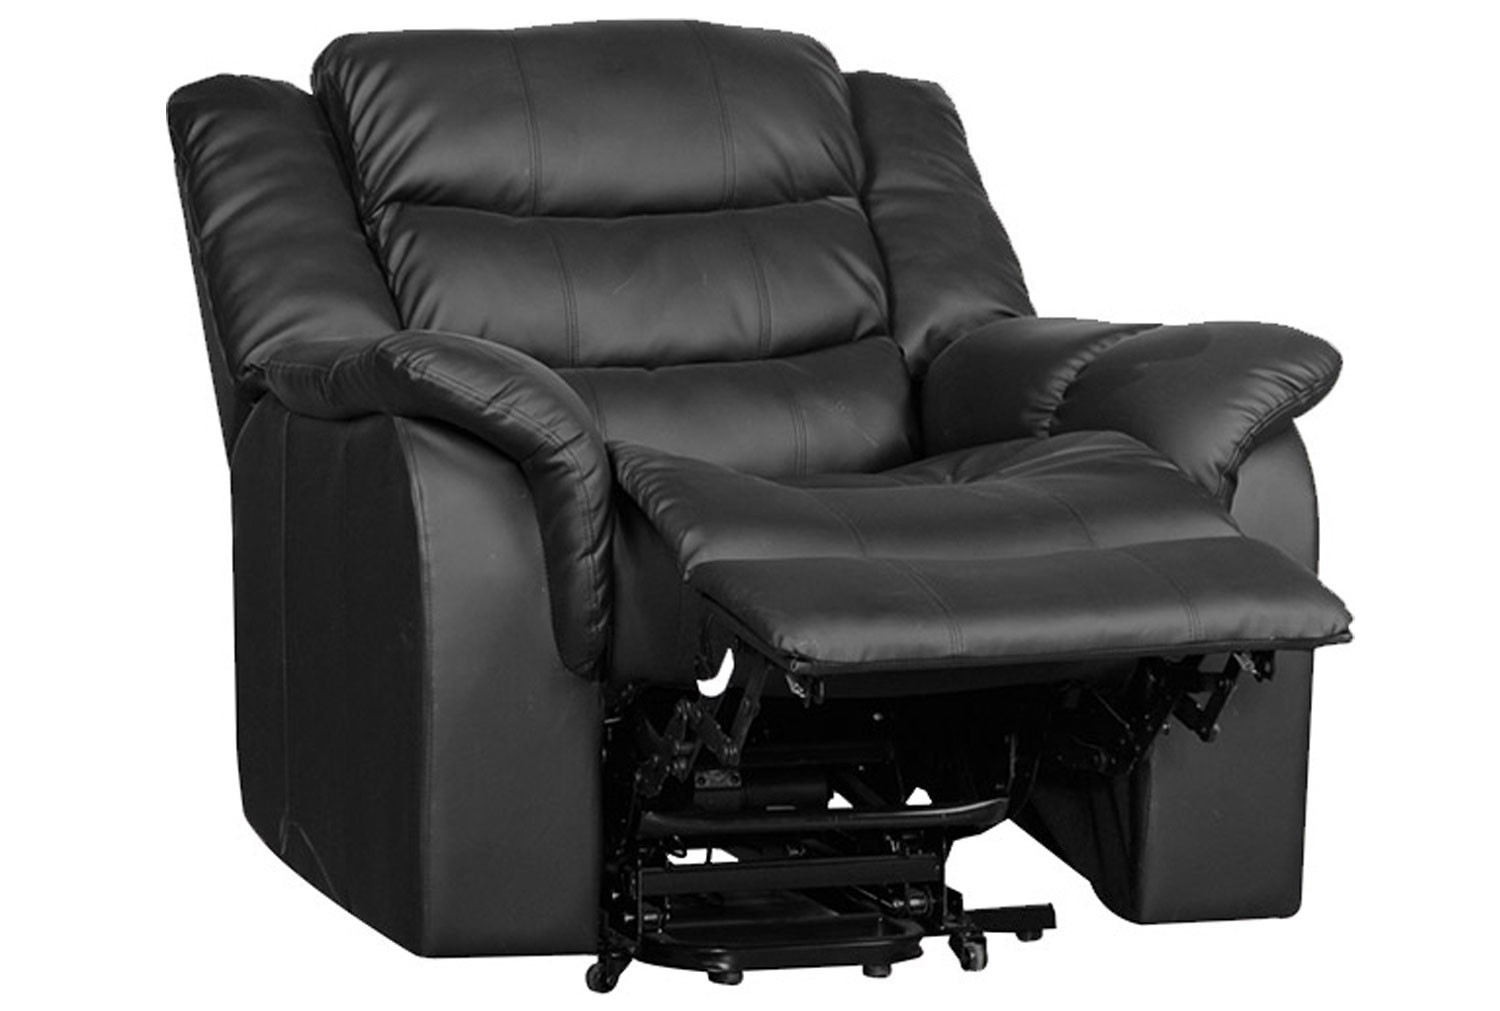 Hunter Leather Recliner Armchair